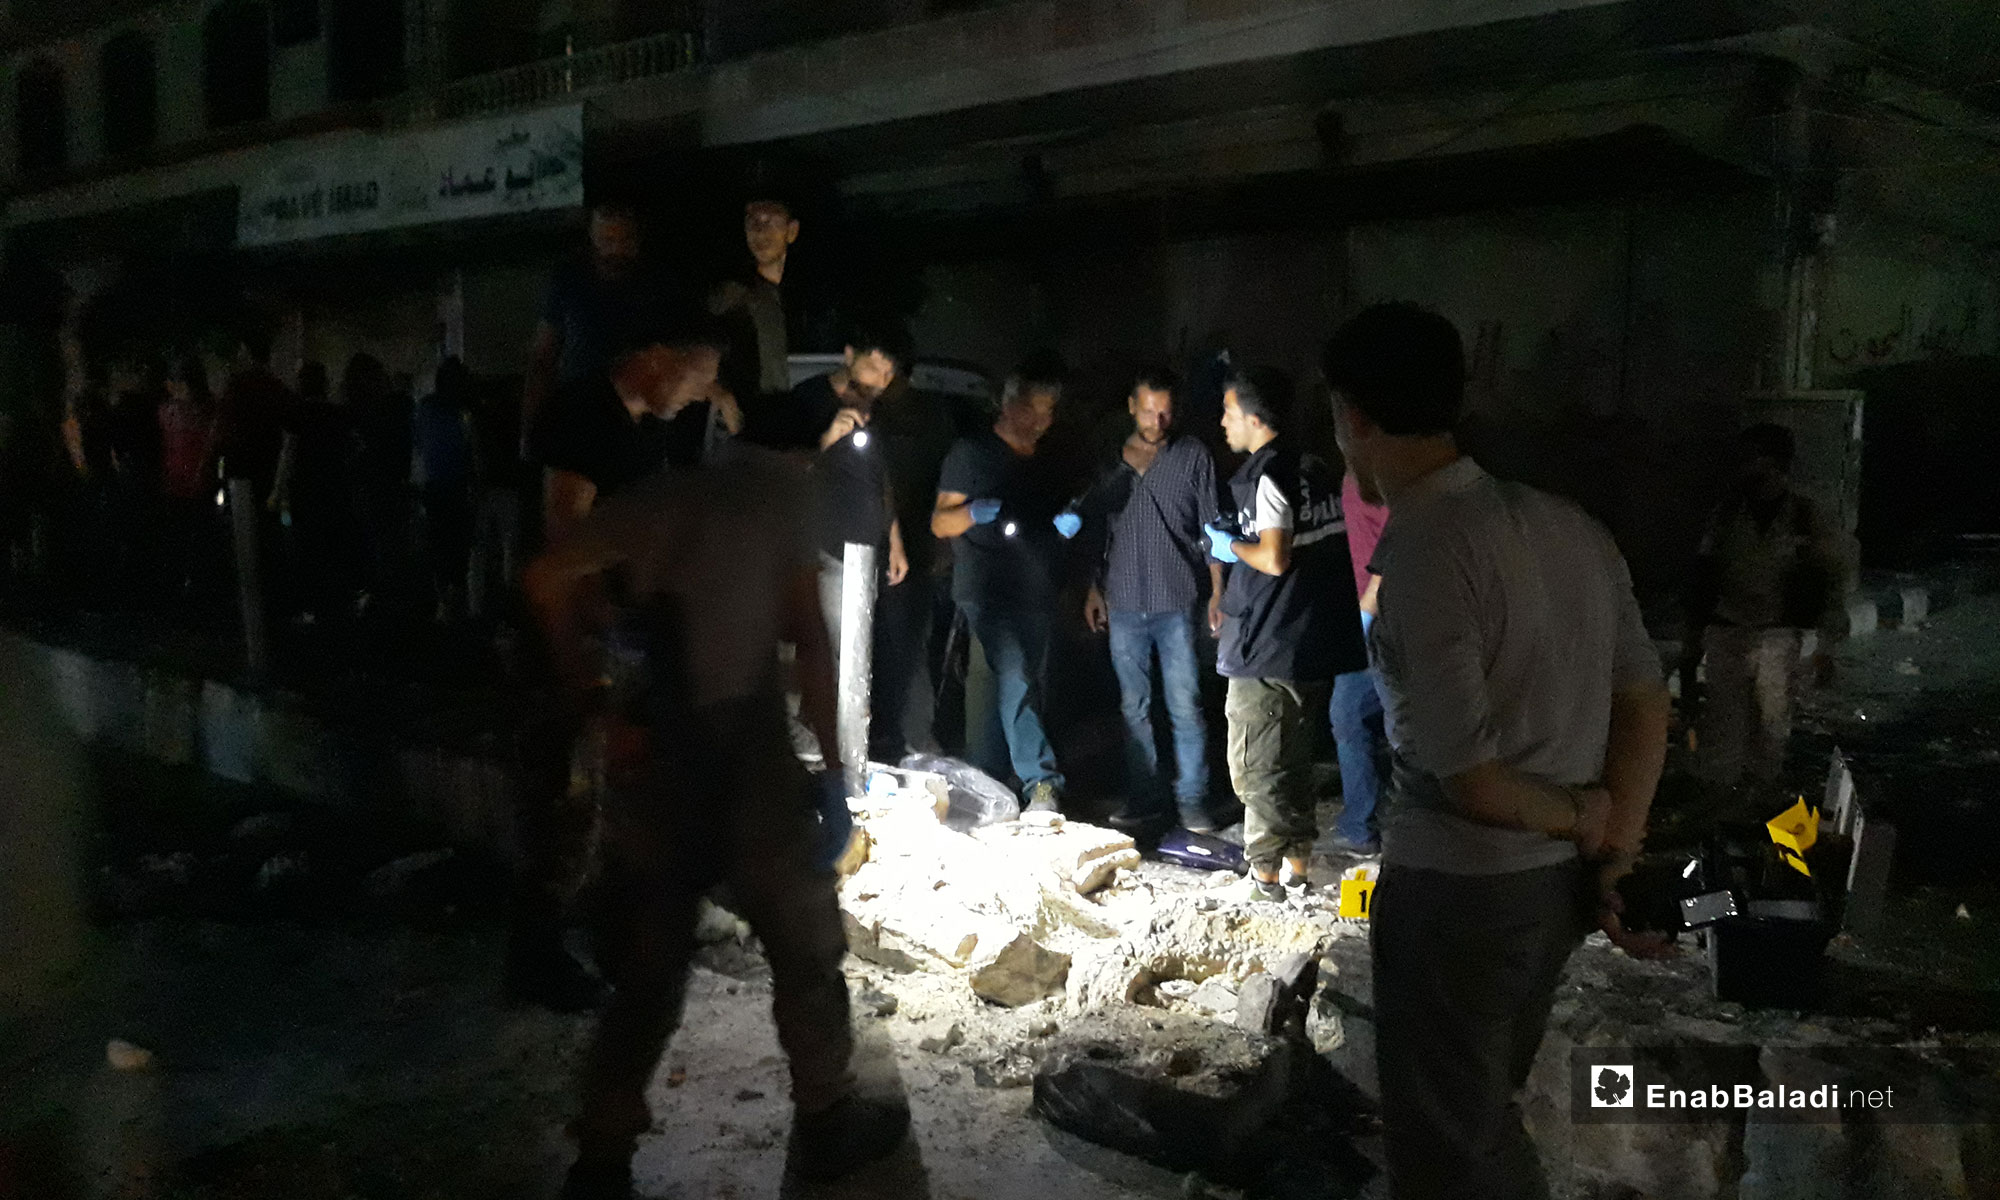 Destruction caused by an explosive device in the city of Afrin – August 29, 2018 (Enab Baladi)